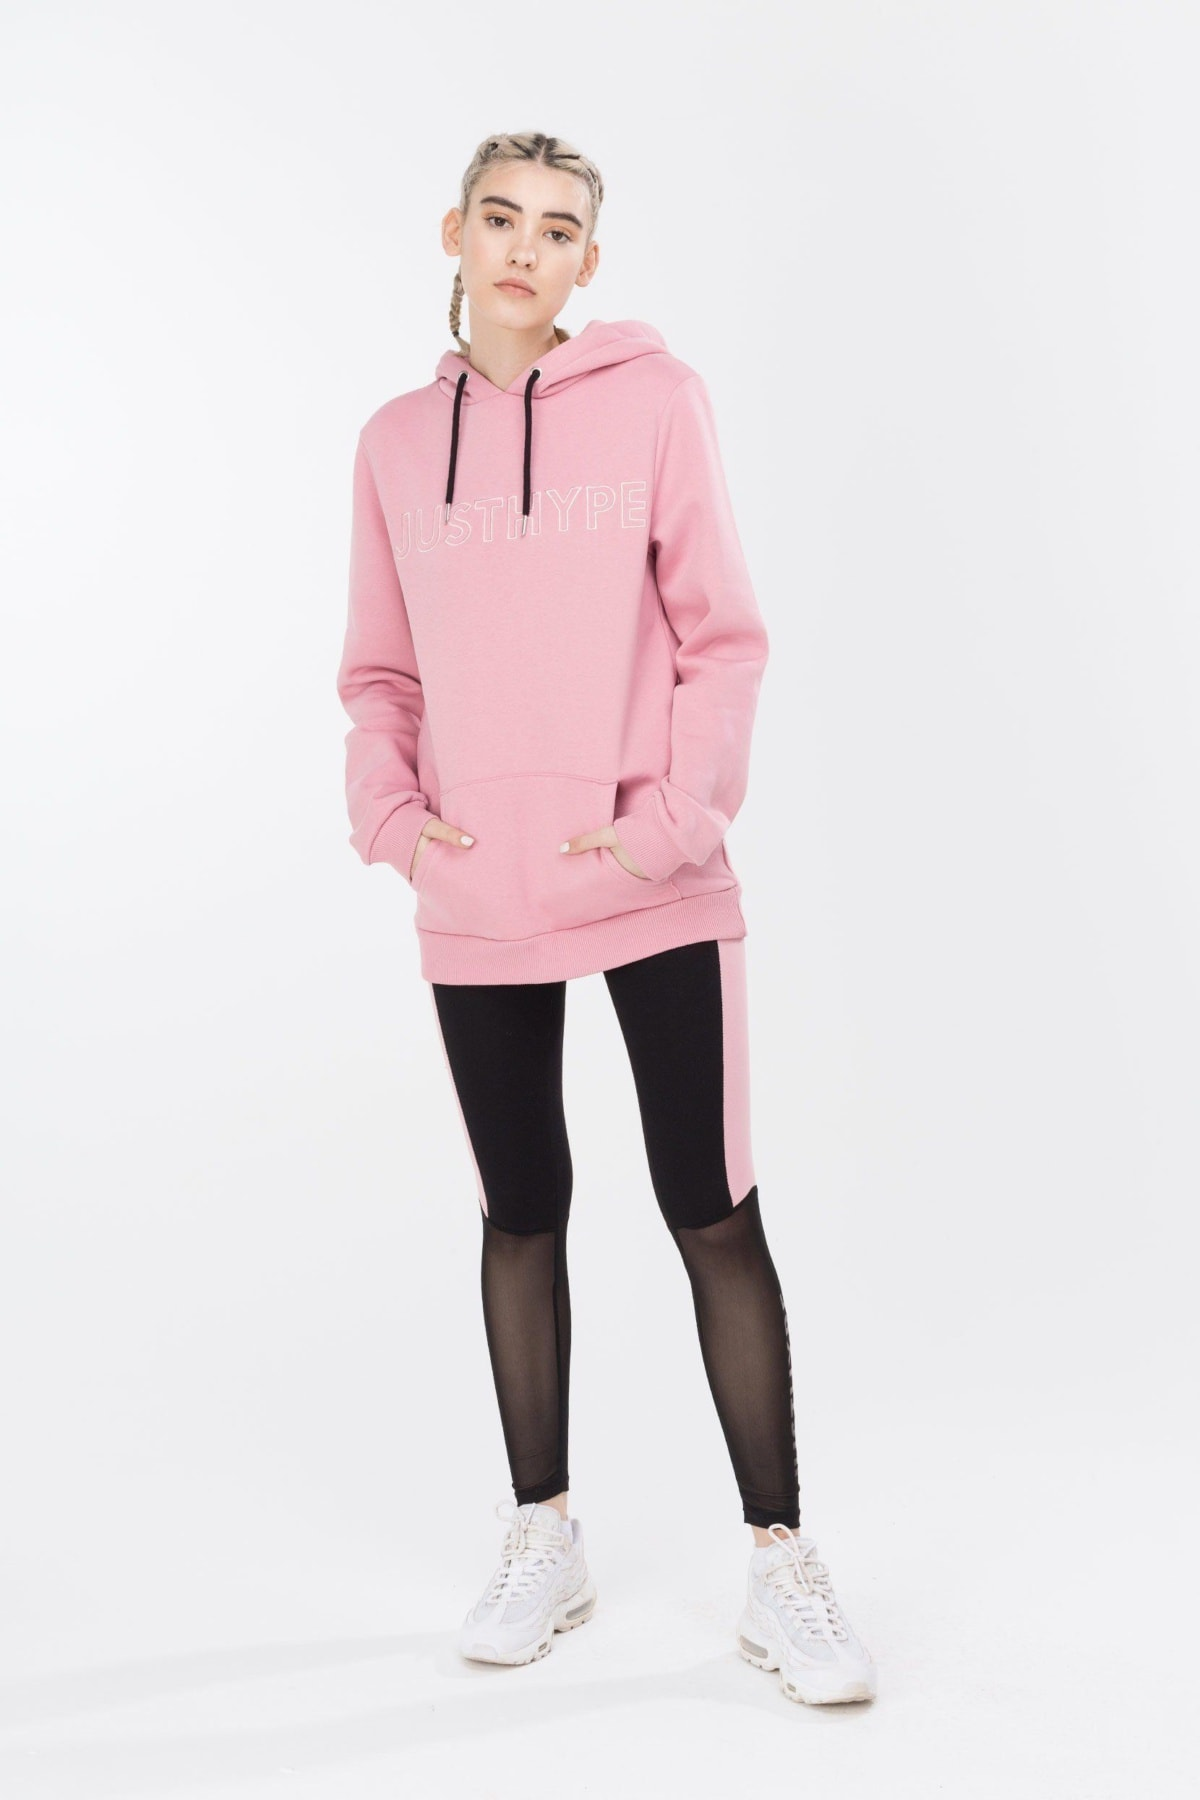 HYPE Pink/Pink Embroidered Women's Pullover Hoodie